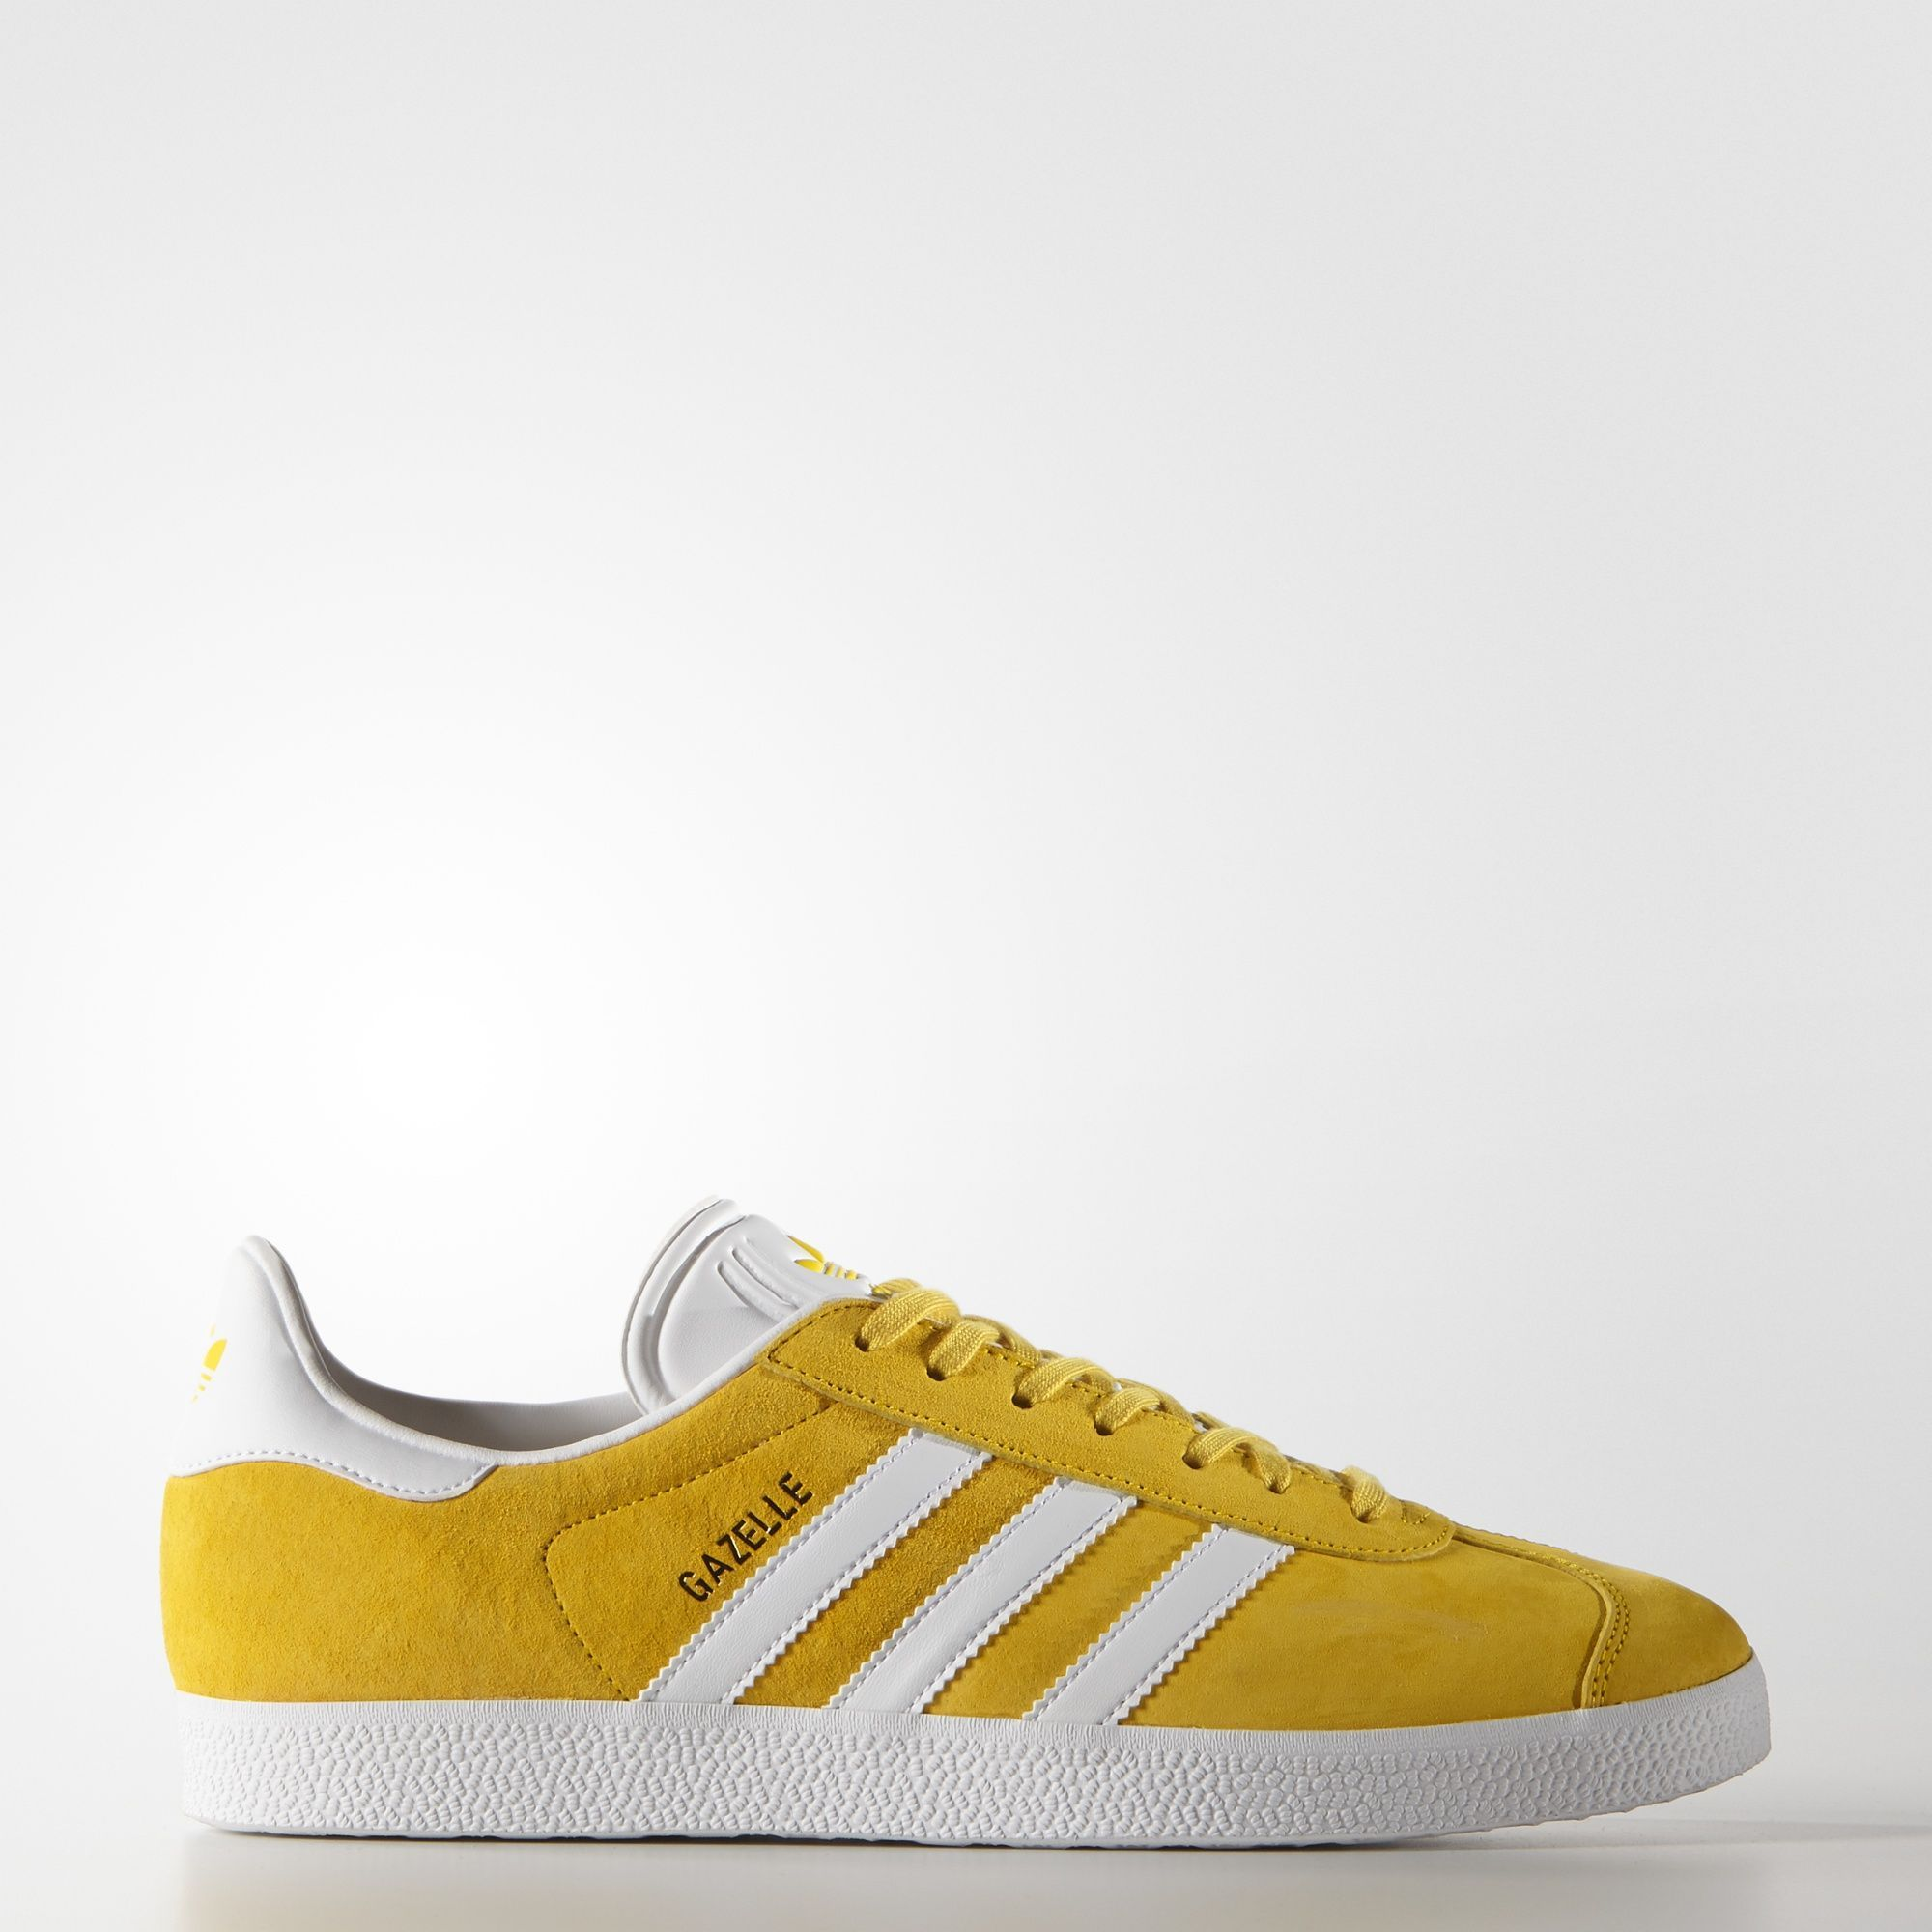 check out 193f2 cc11d adidas - Gazelle Shoes yellow (pinned color) size 8.5